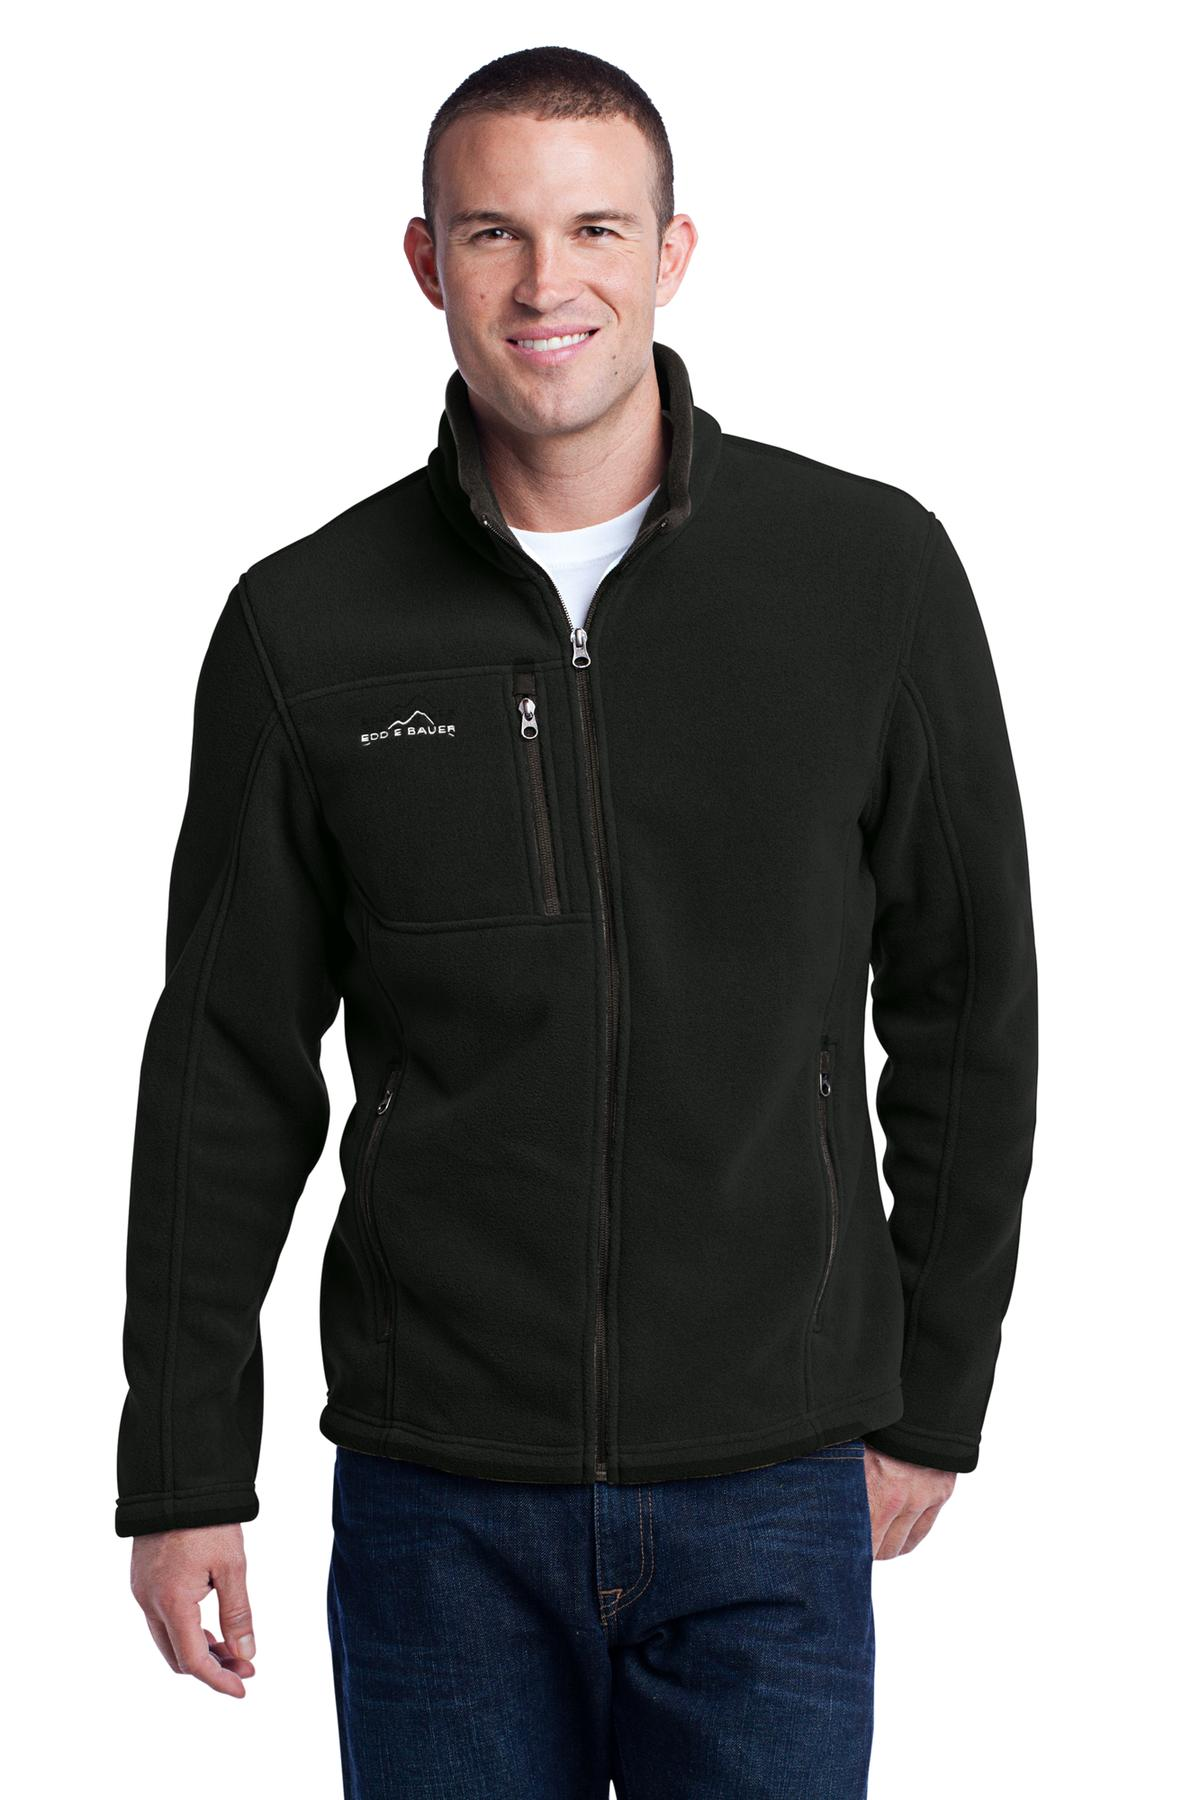 Eddie Bauer ®  - Full-Zip Fleece Jacket. EB200 - Black